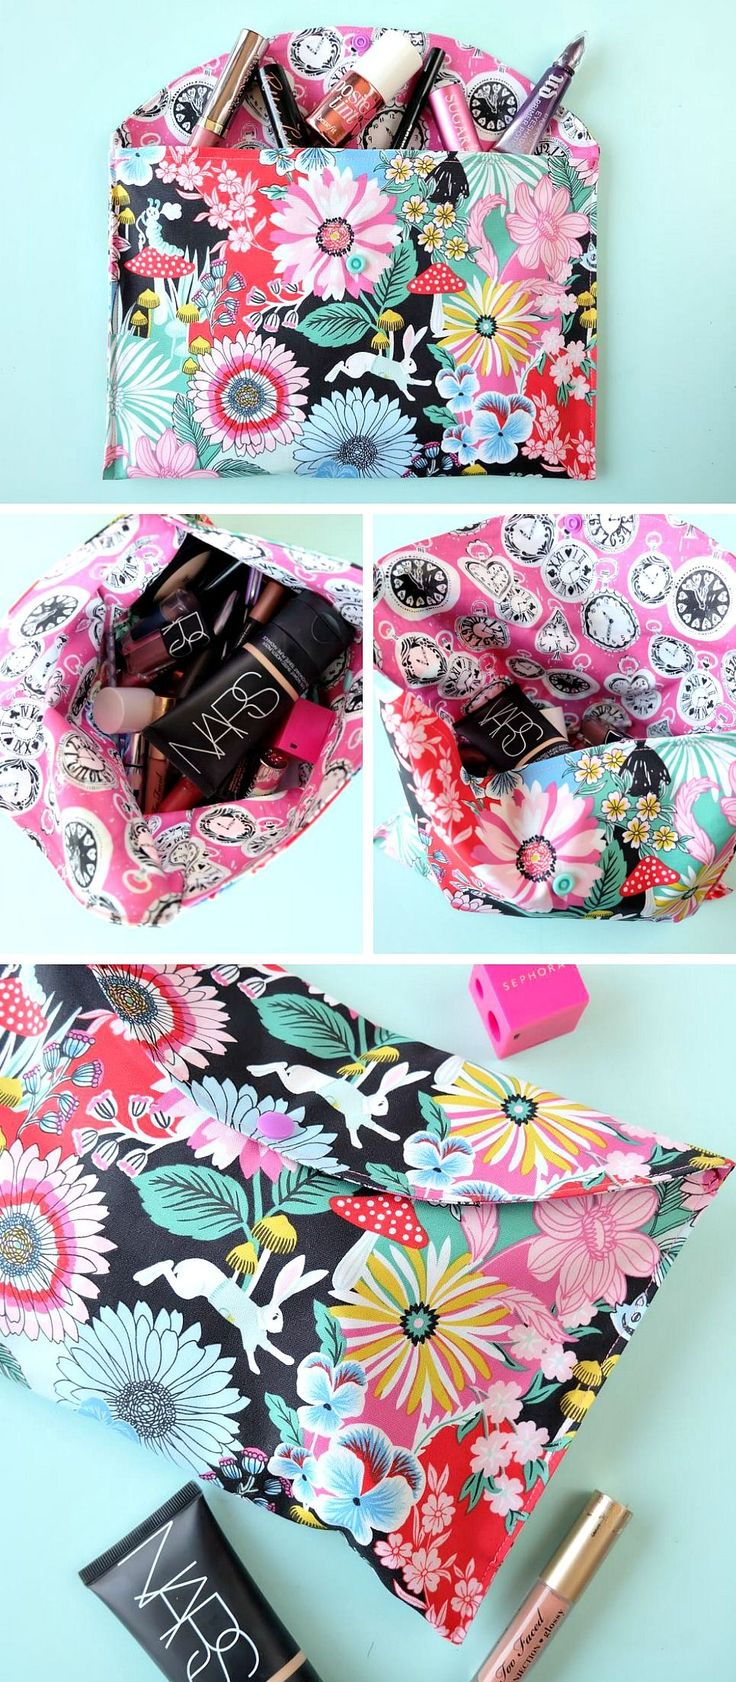 Sewing crafts for teens - 20 Minute Makeup Bag Sewing Tutorial Perfect For Teens And Beginners